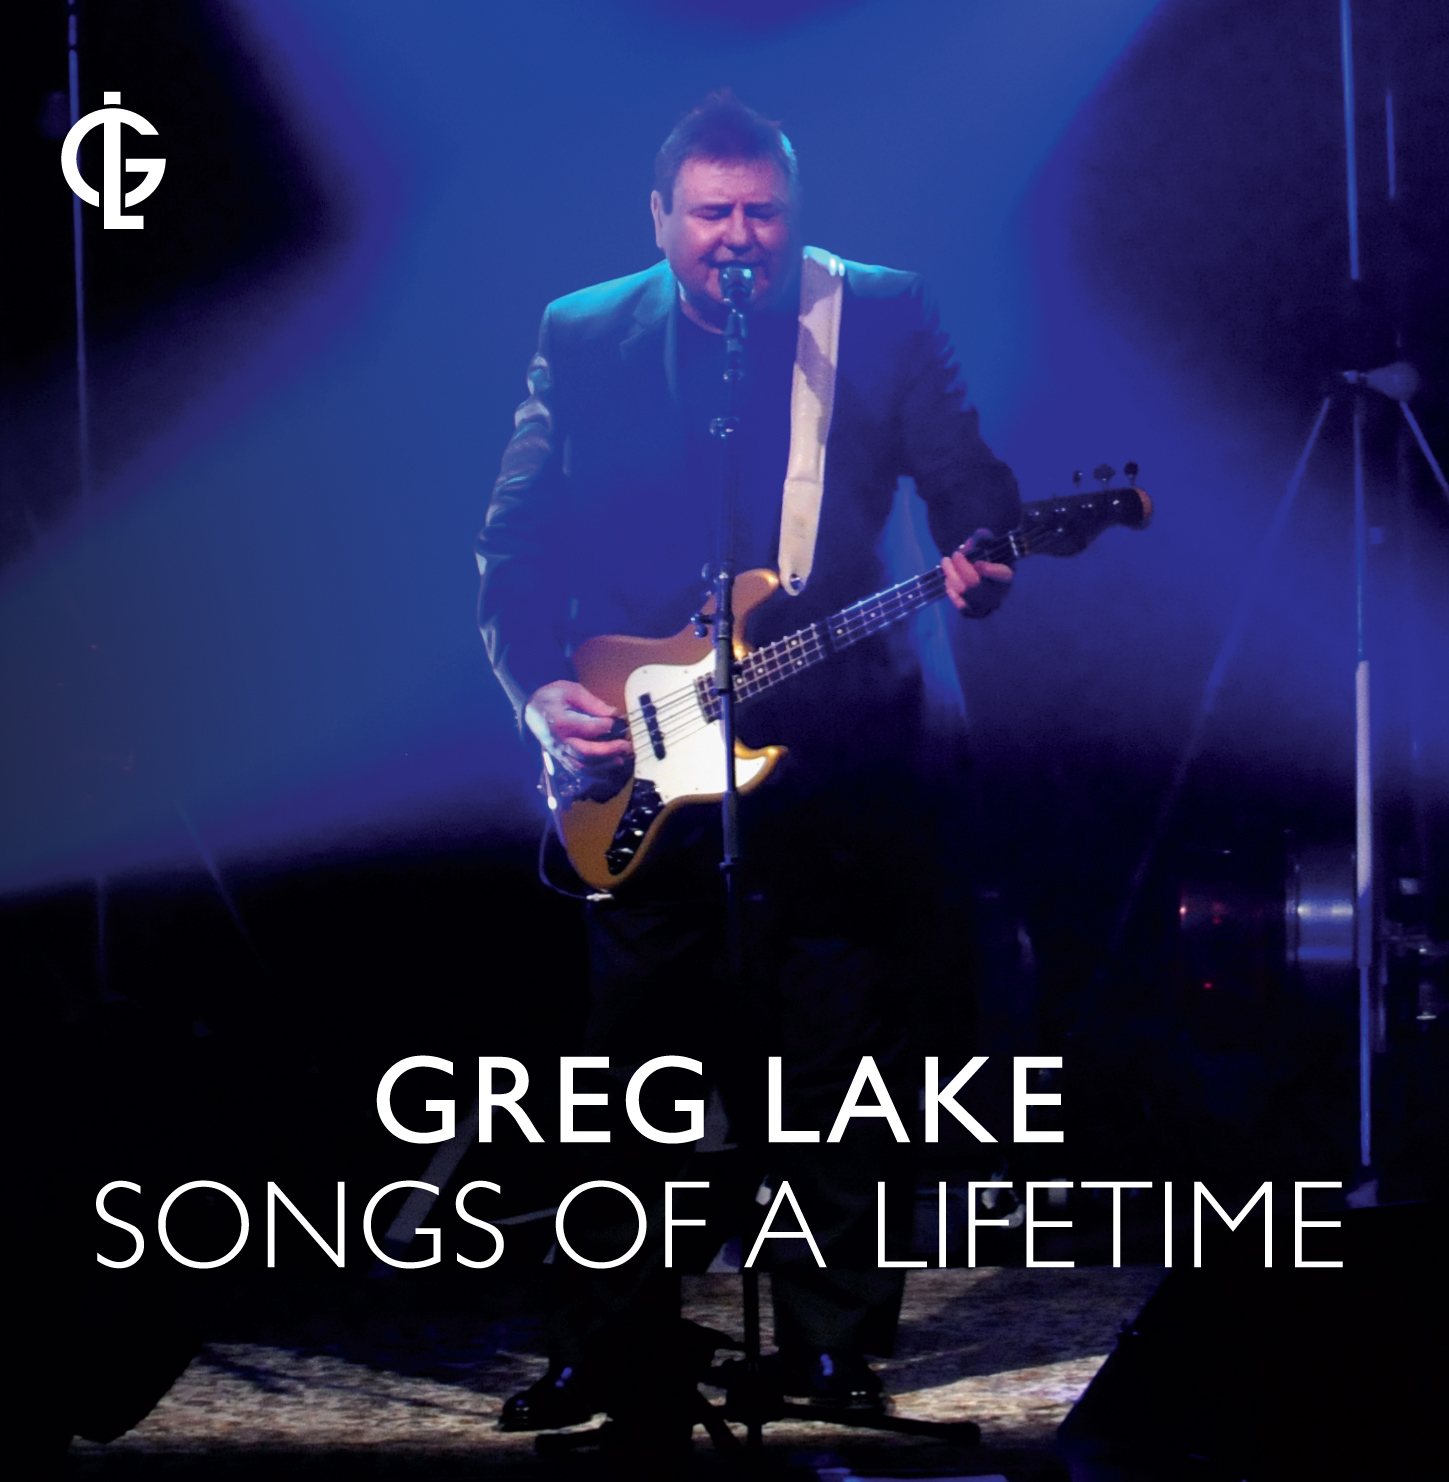 Greg Lake Biography - Emerson, Lake & Palmer Co-Founder Dead at 69